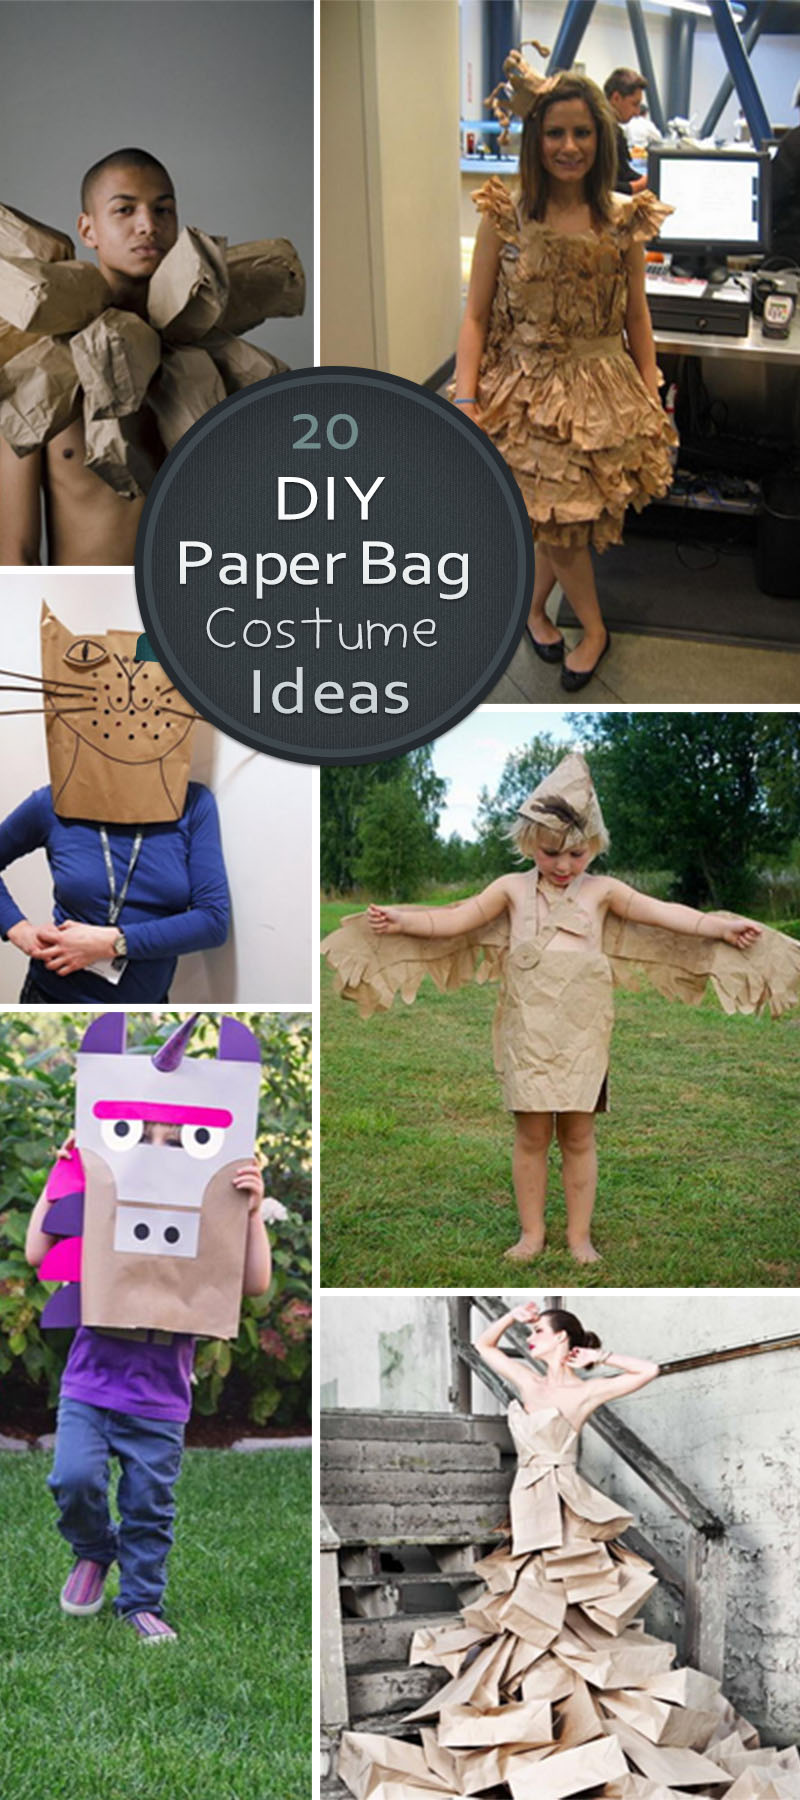 DIY Paper Bag Costume Ideas!